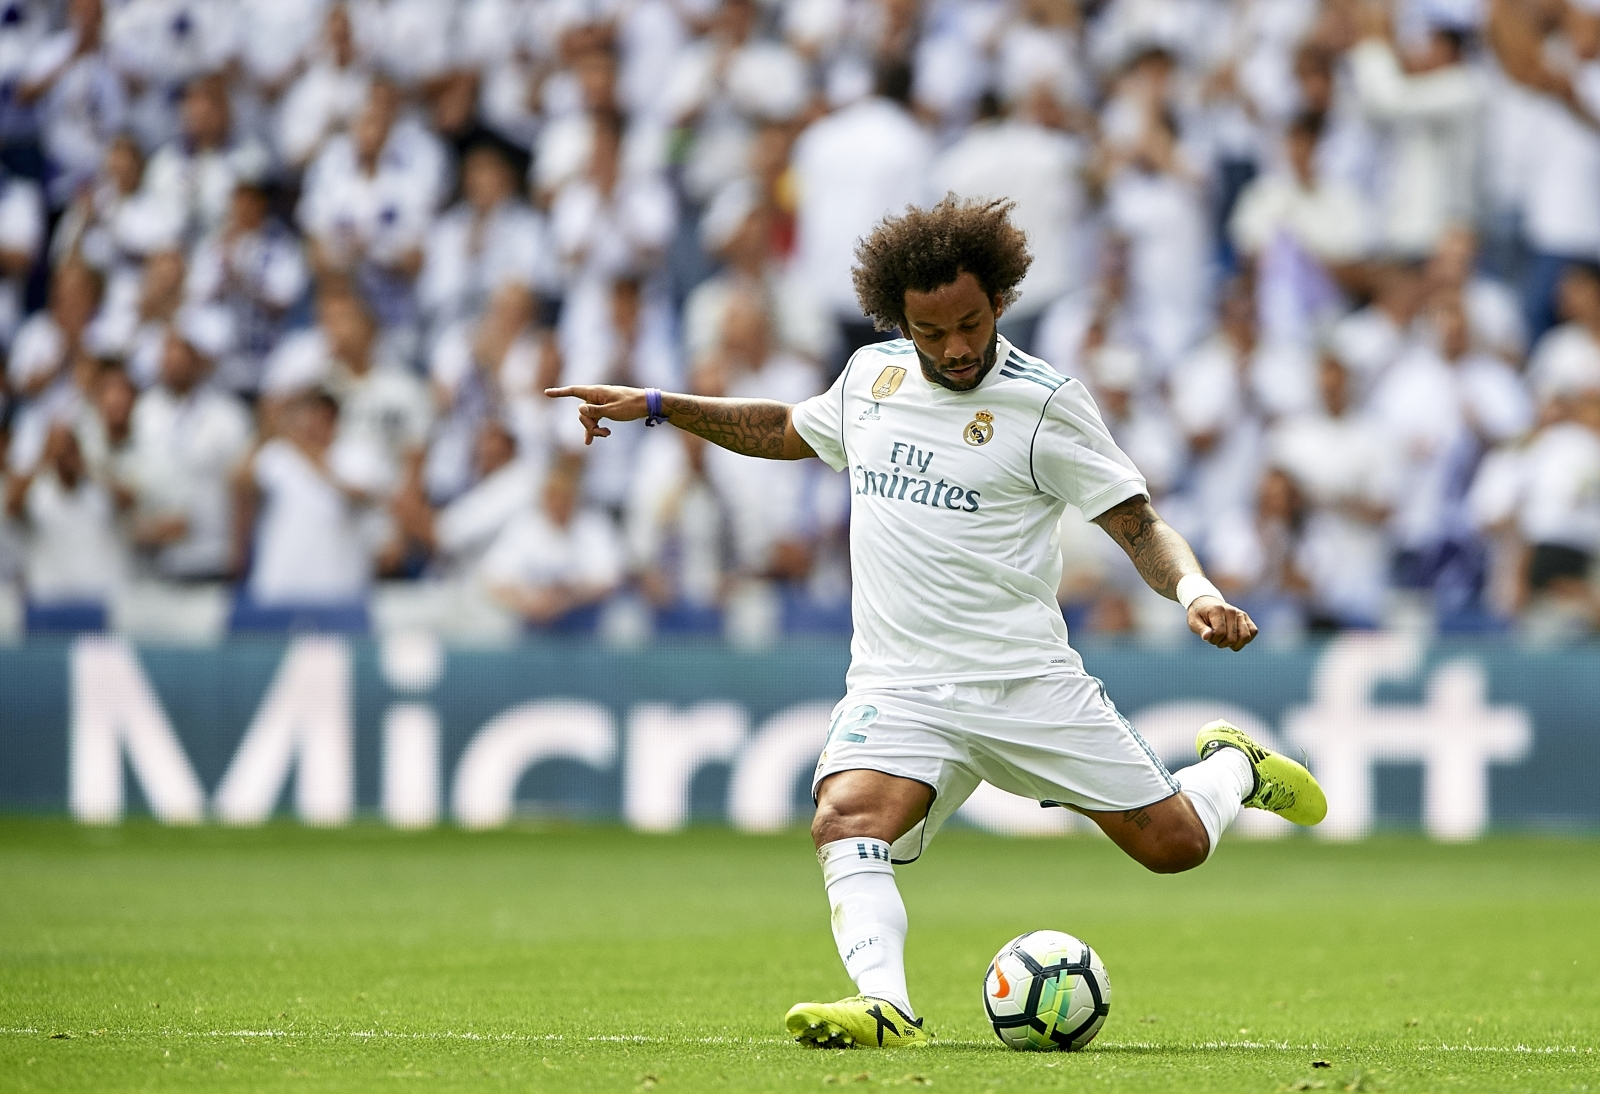 Real Madrid extends Marcelo's contract